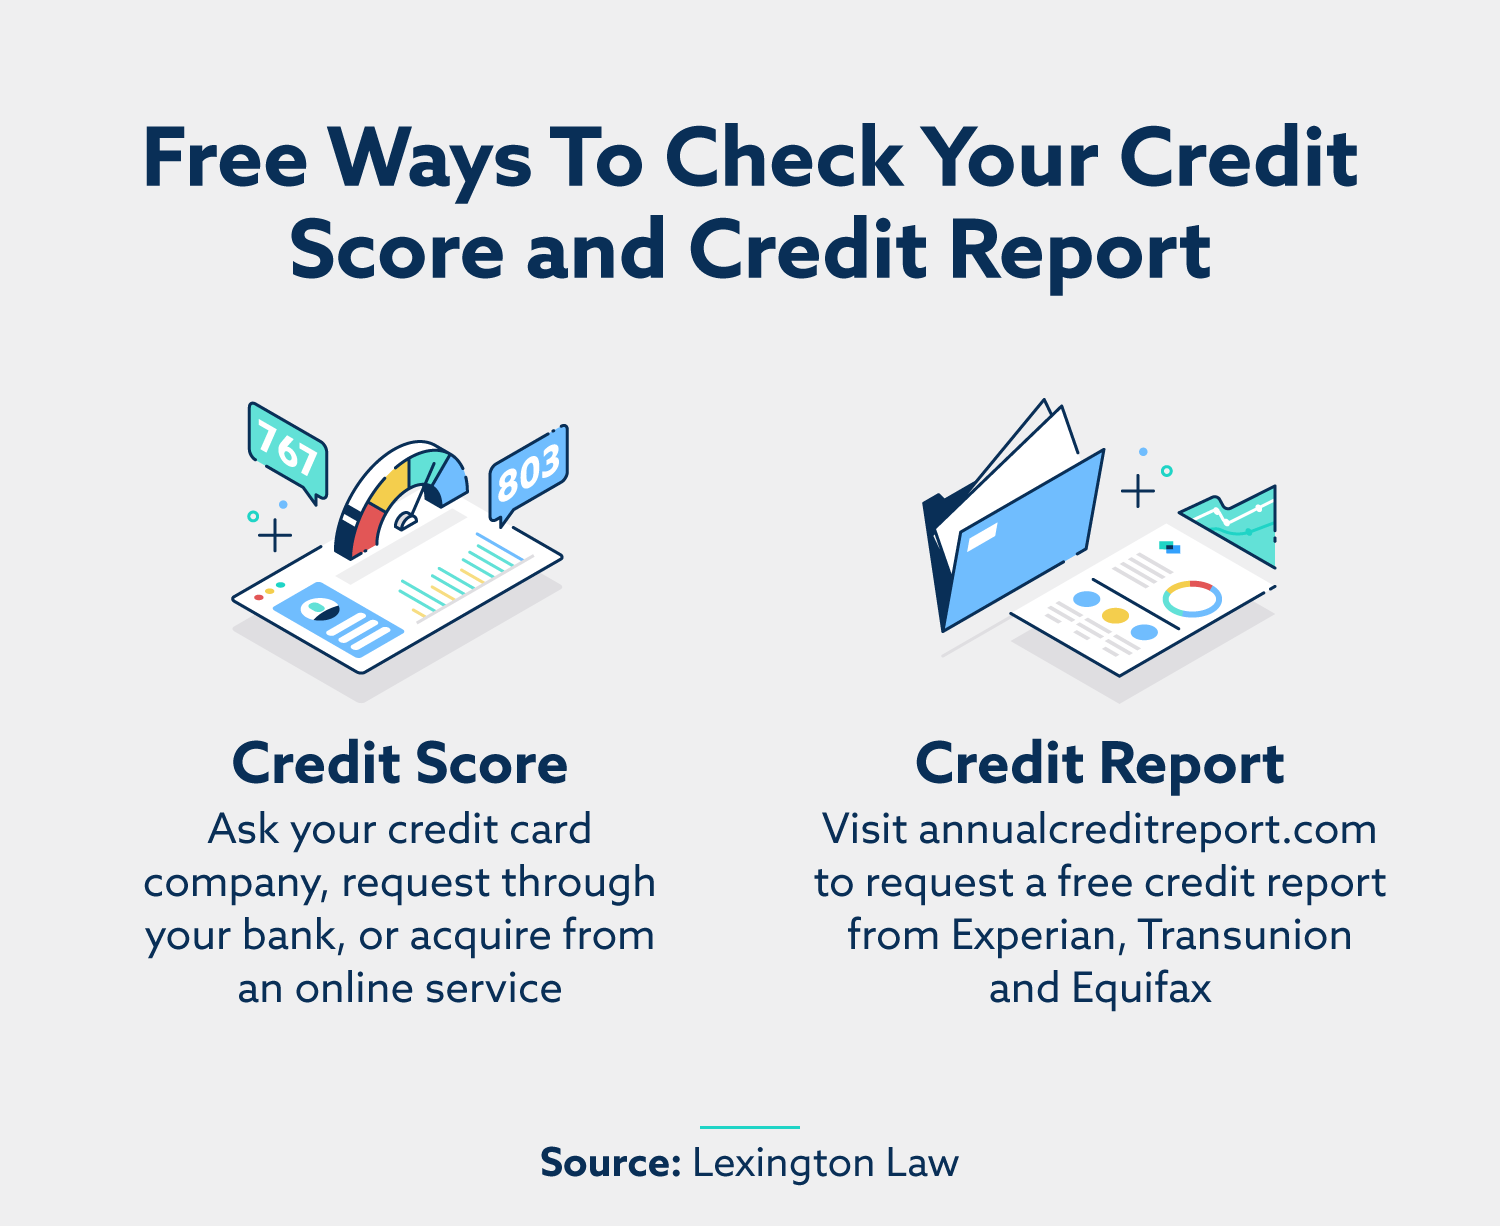 free ways to check your credit score and credit report